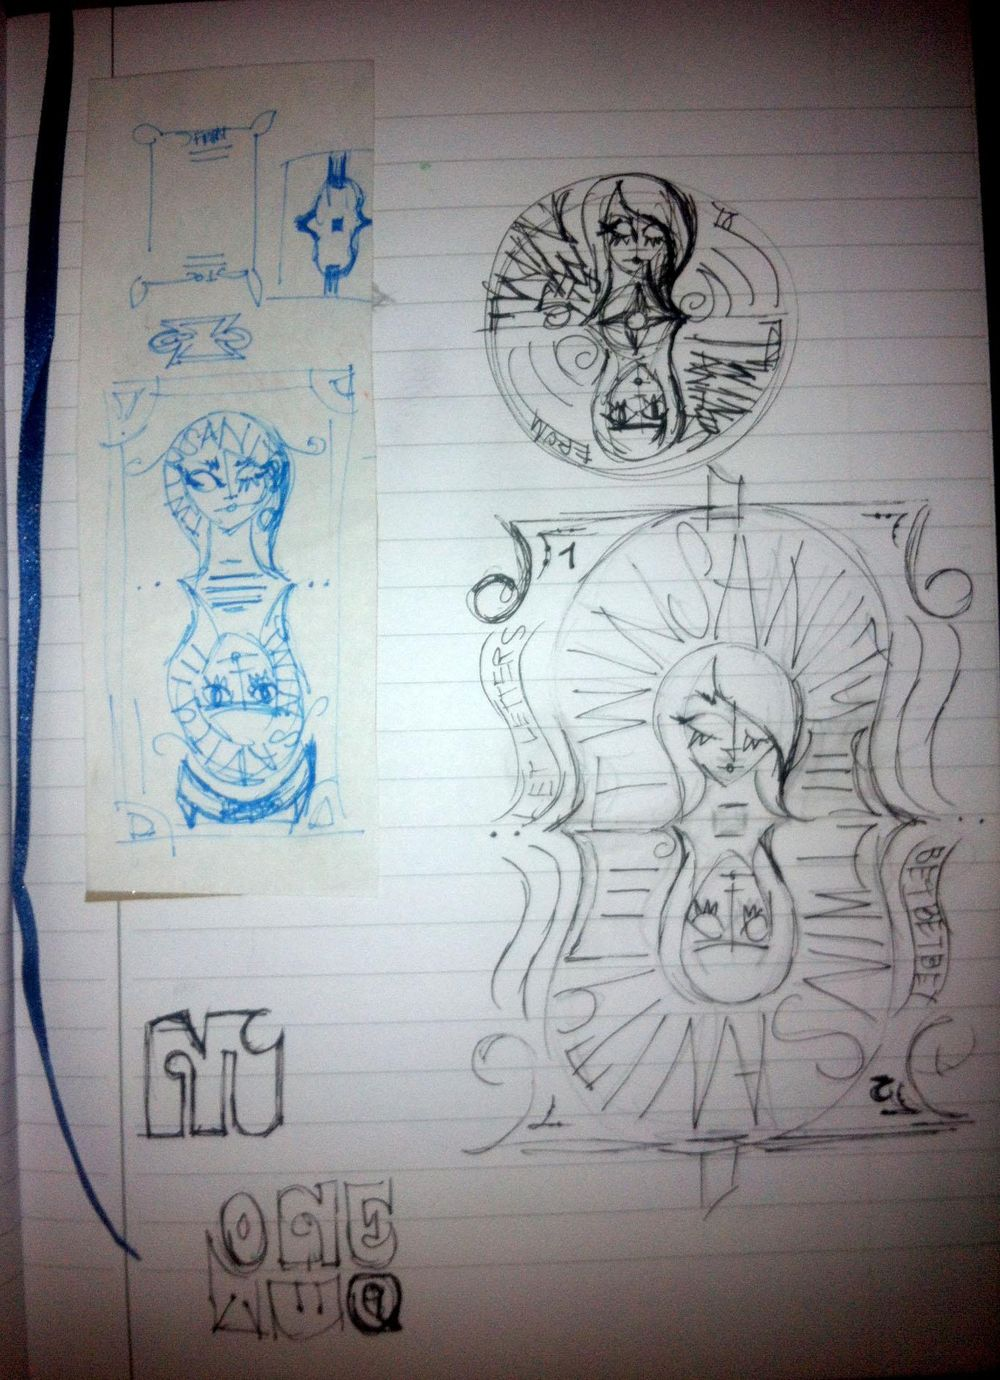 Twinsanity - image 2 - student project